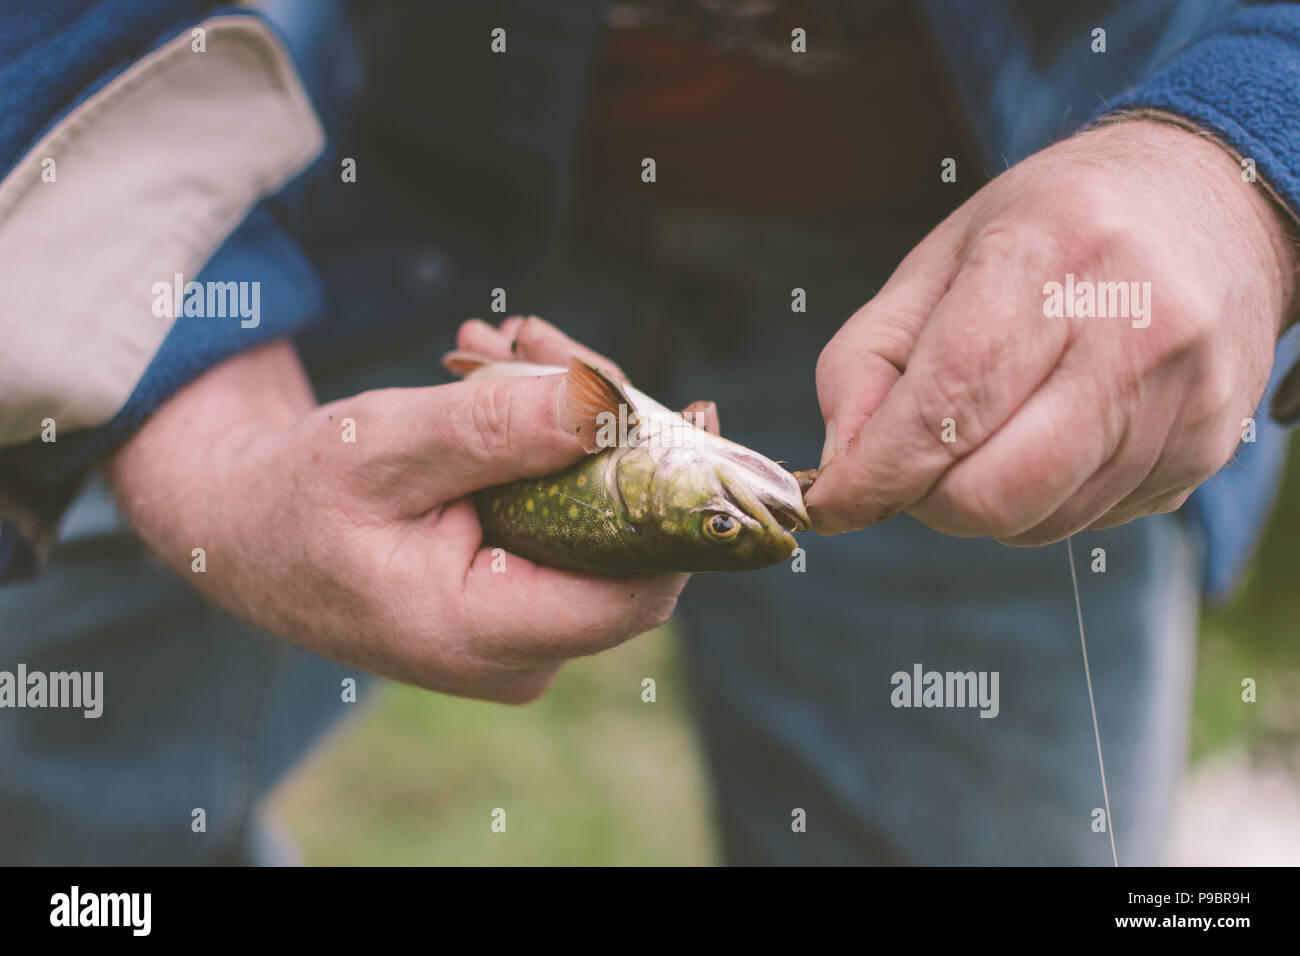 Removing A Hook From A Fish - Catch And Release - Stock Image